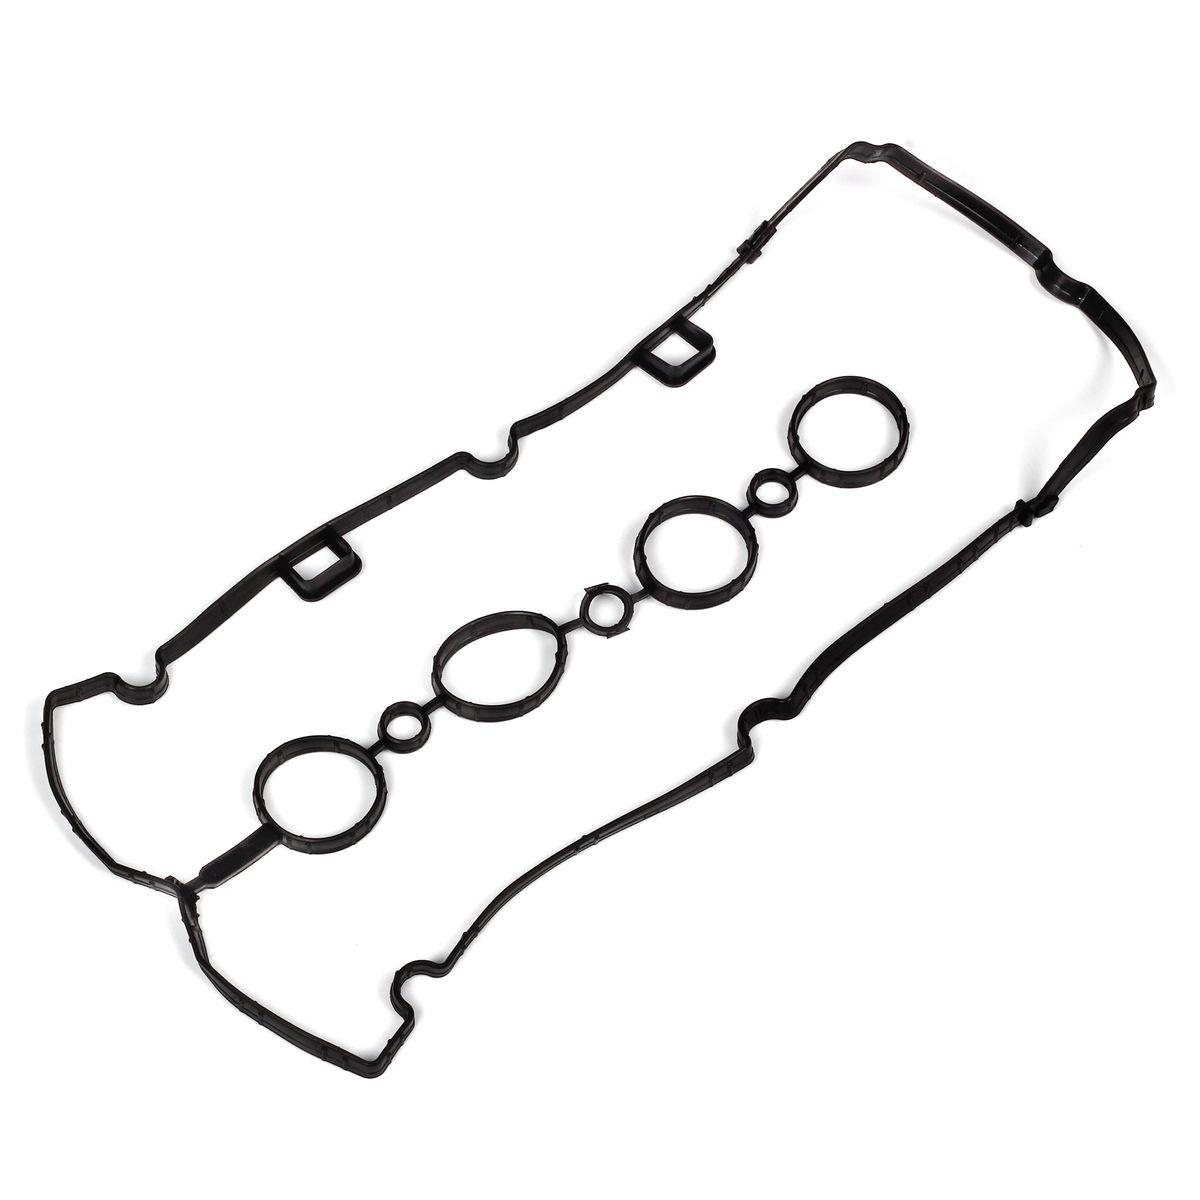 For 09-14 Chevrolet Cruze Sonic Engine Valve Cover Gasket